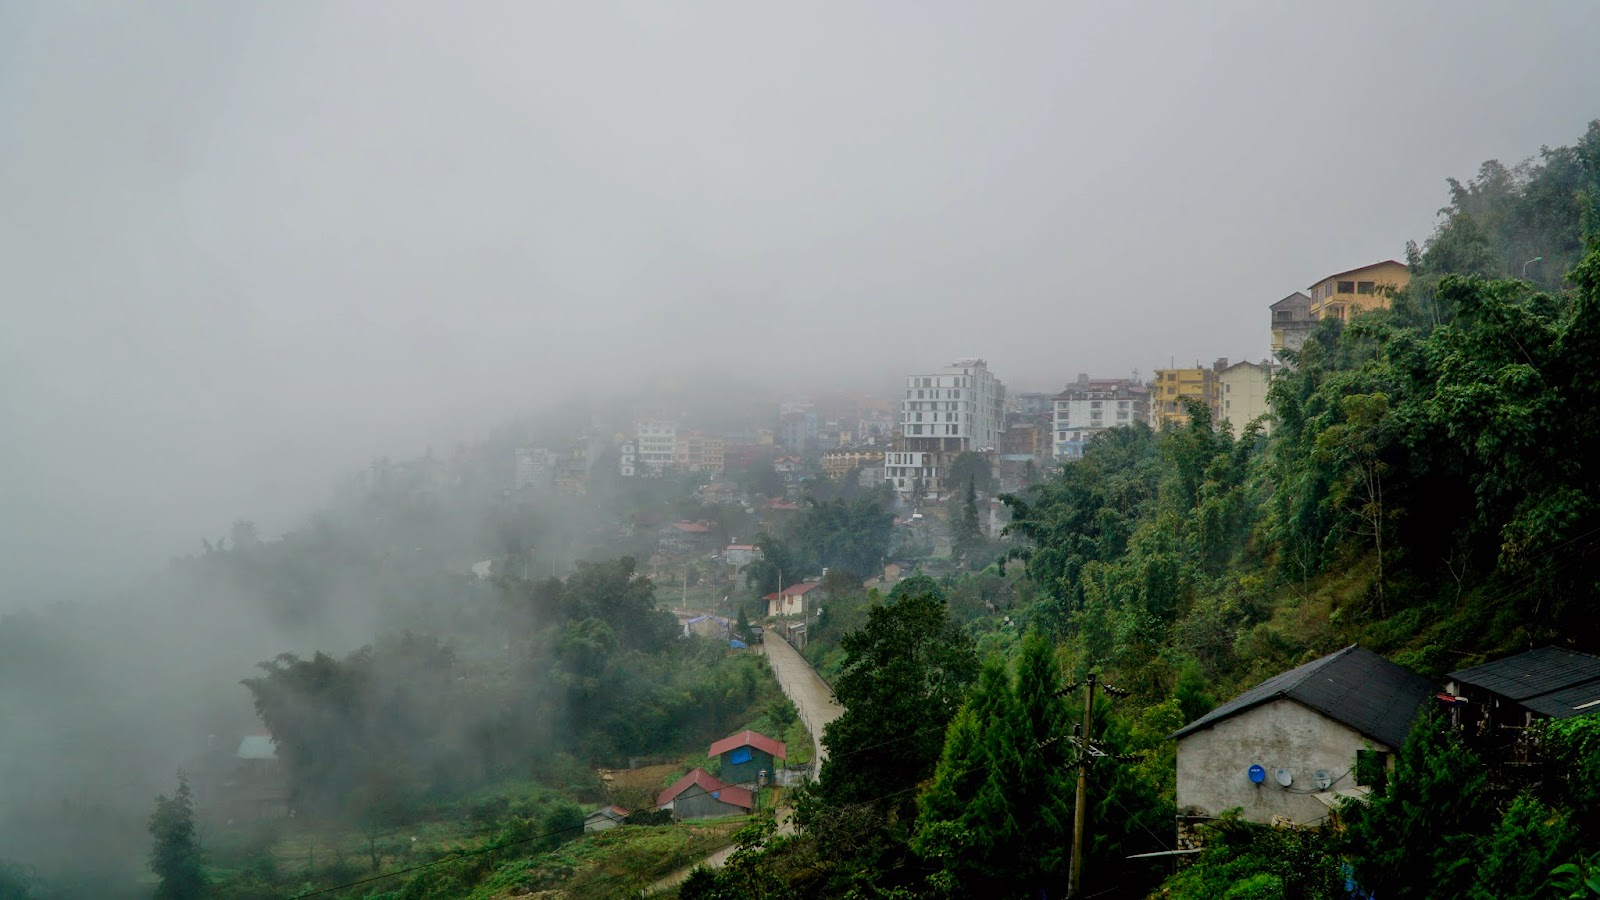 Sapa town enveloped in the mists